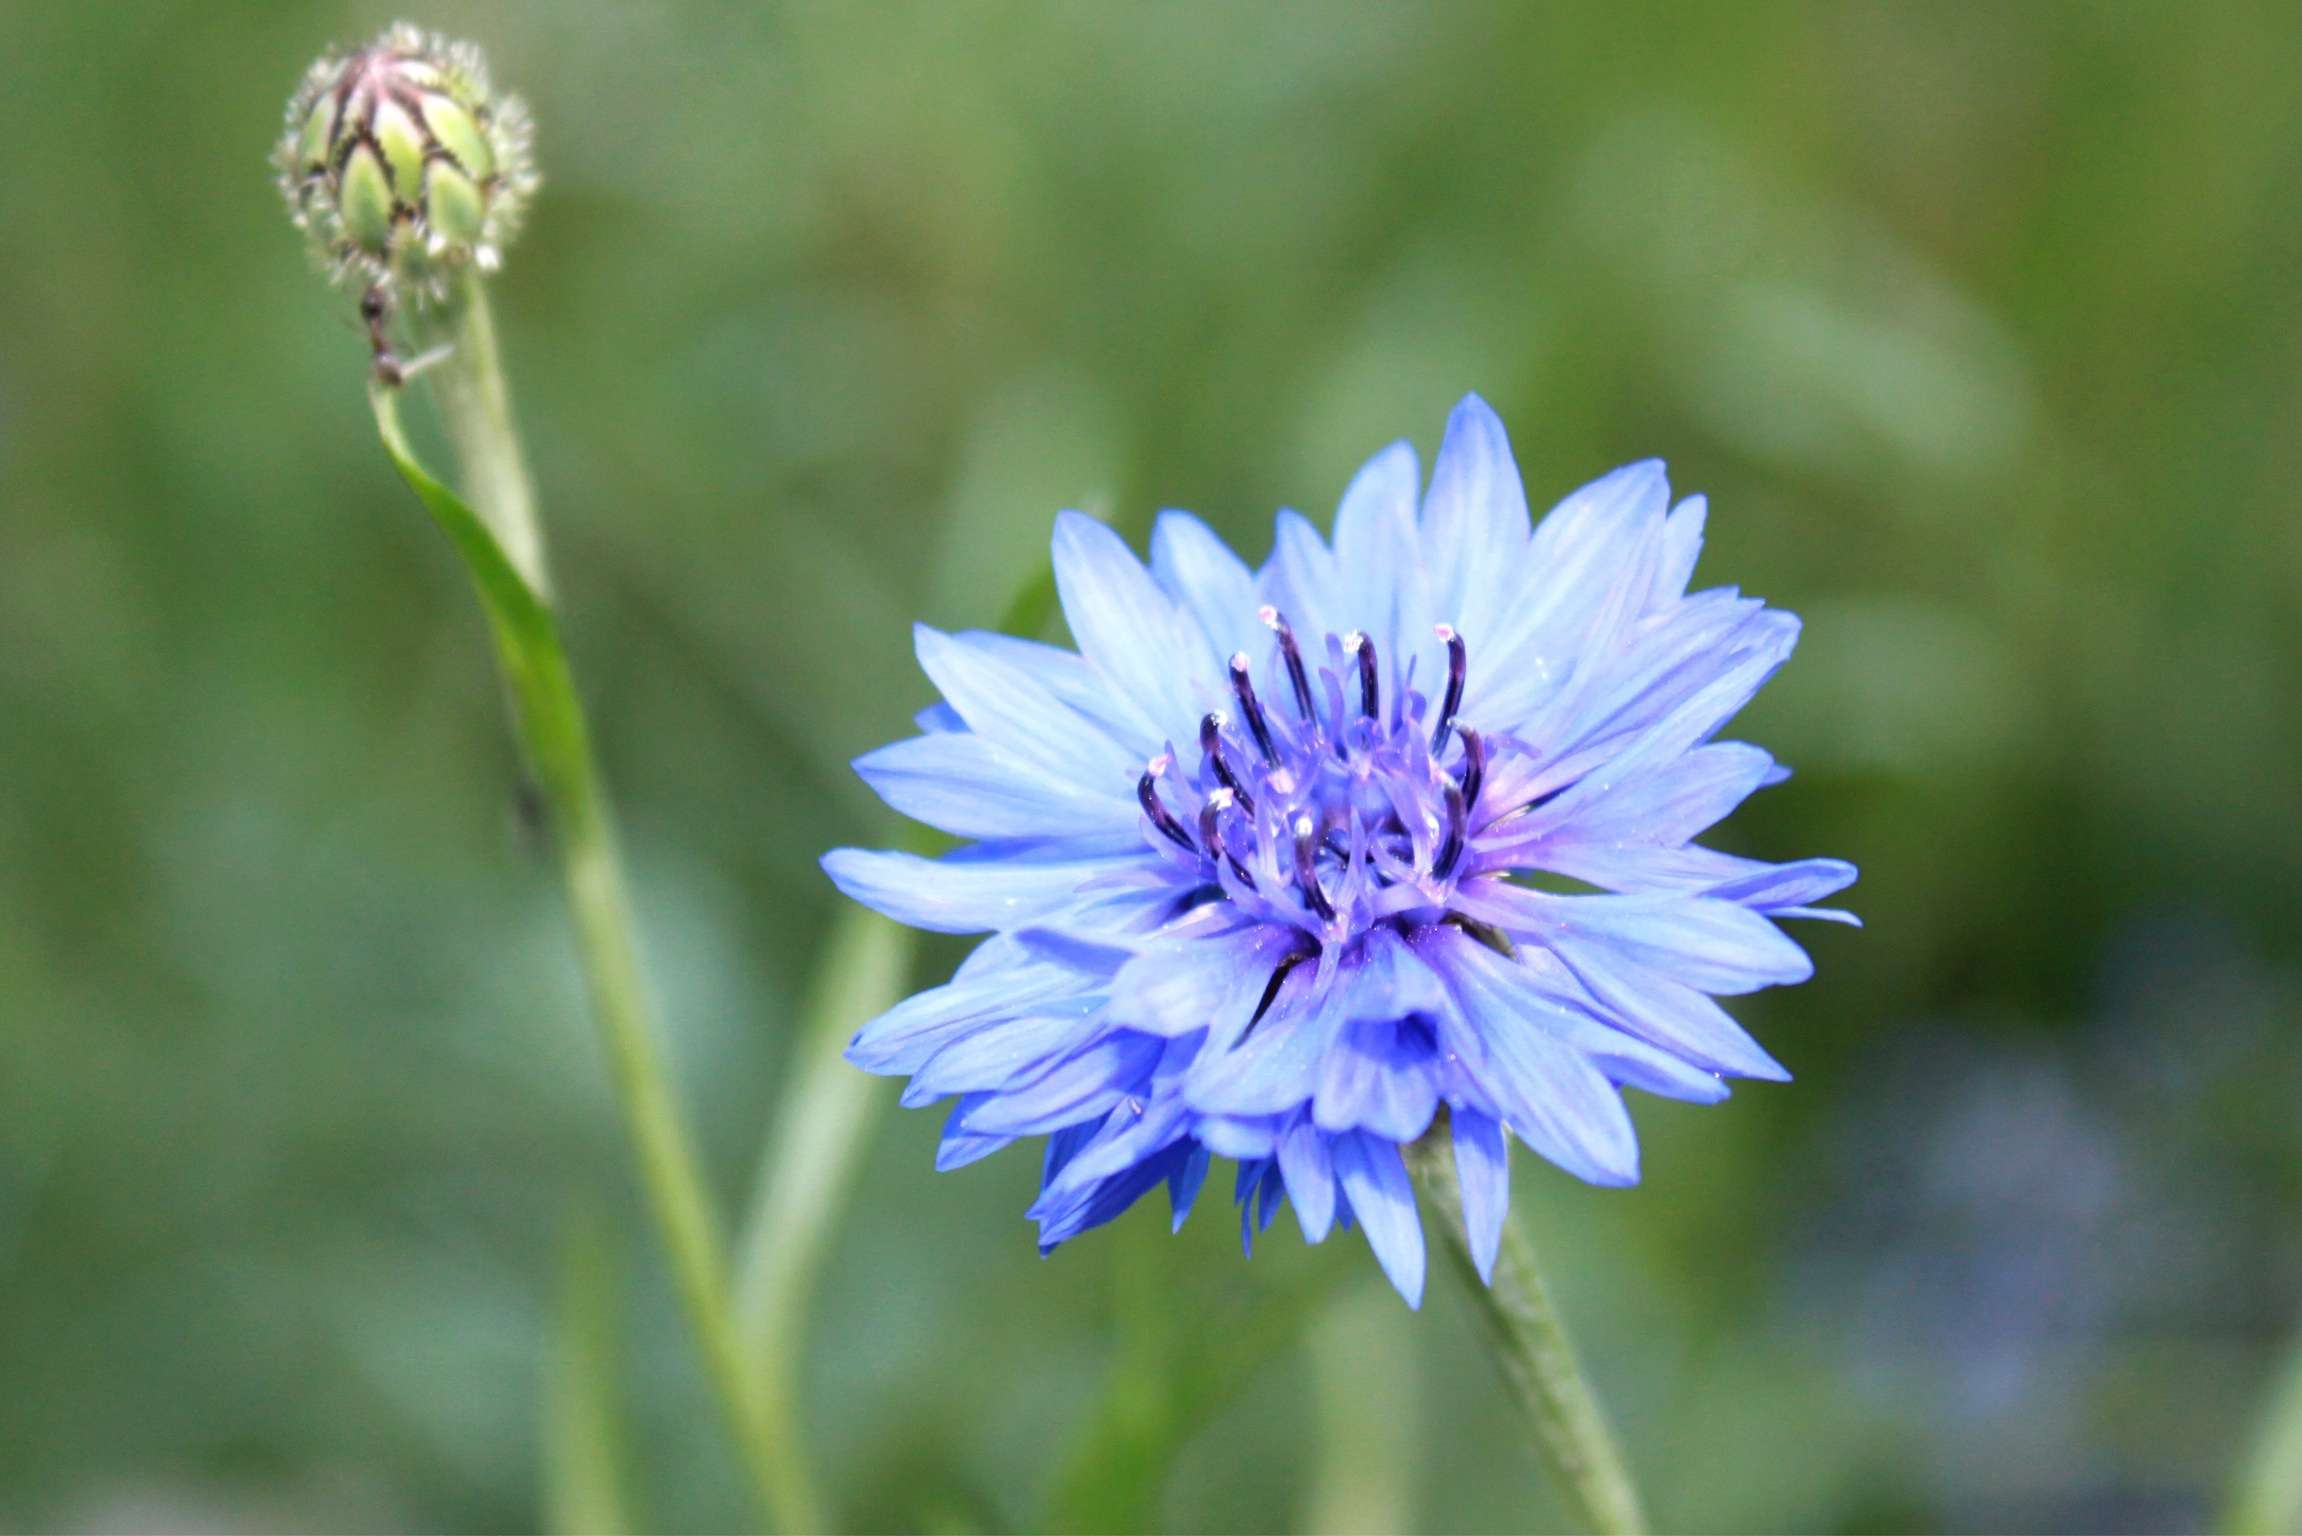 How to Make Natural Blue Dye From Plants